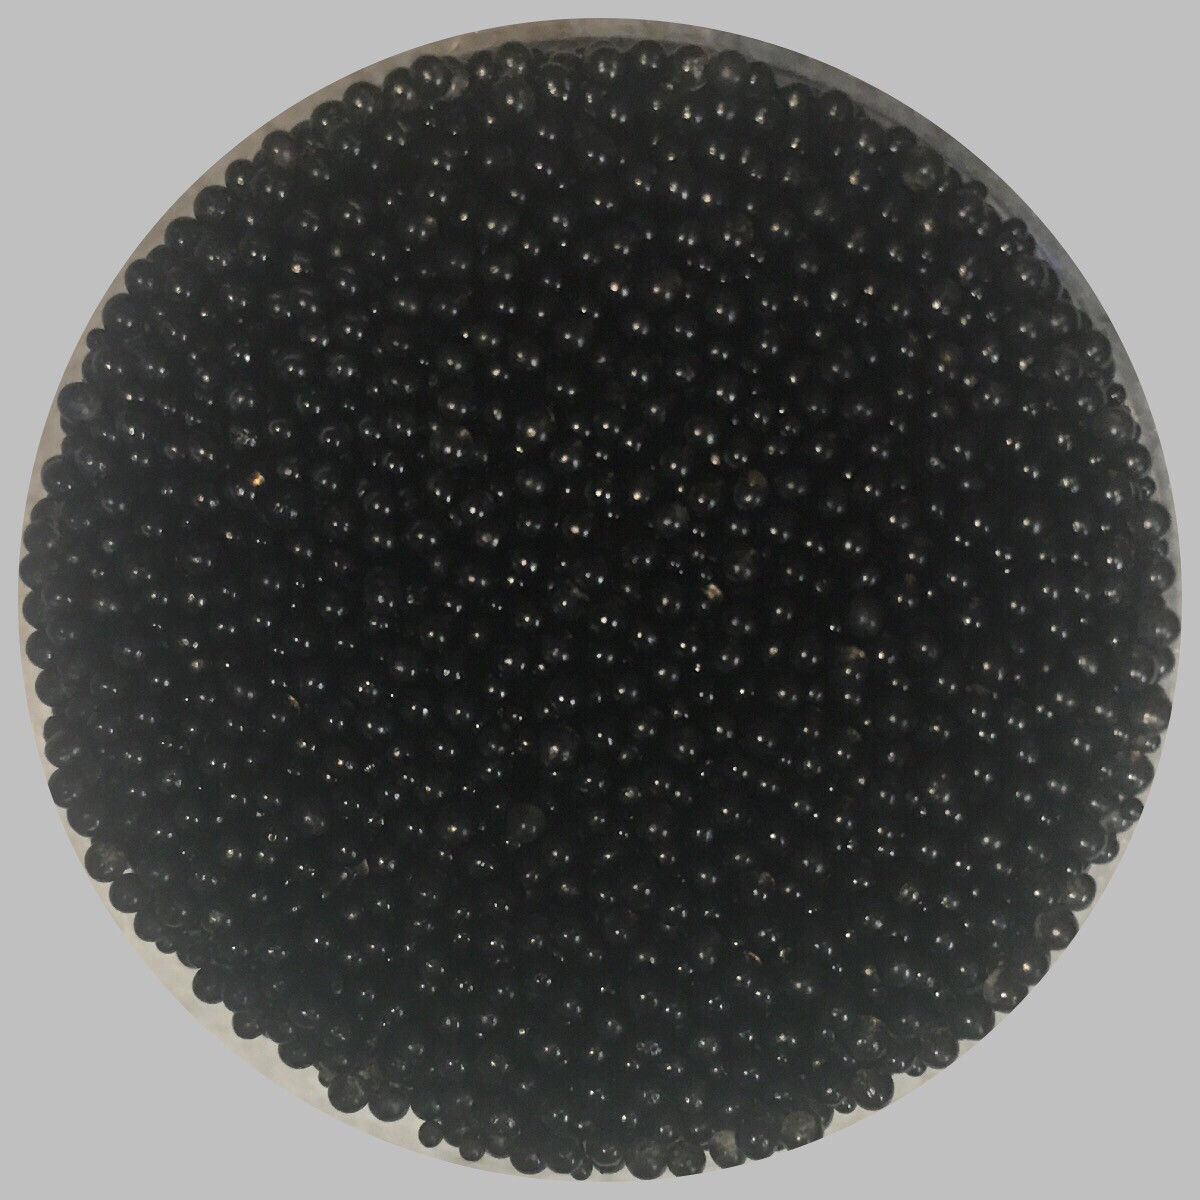 Black Mini Glass Beads 45gr